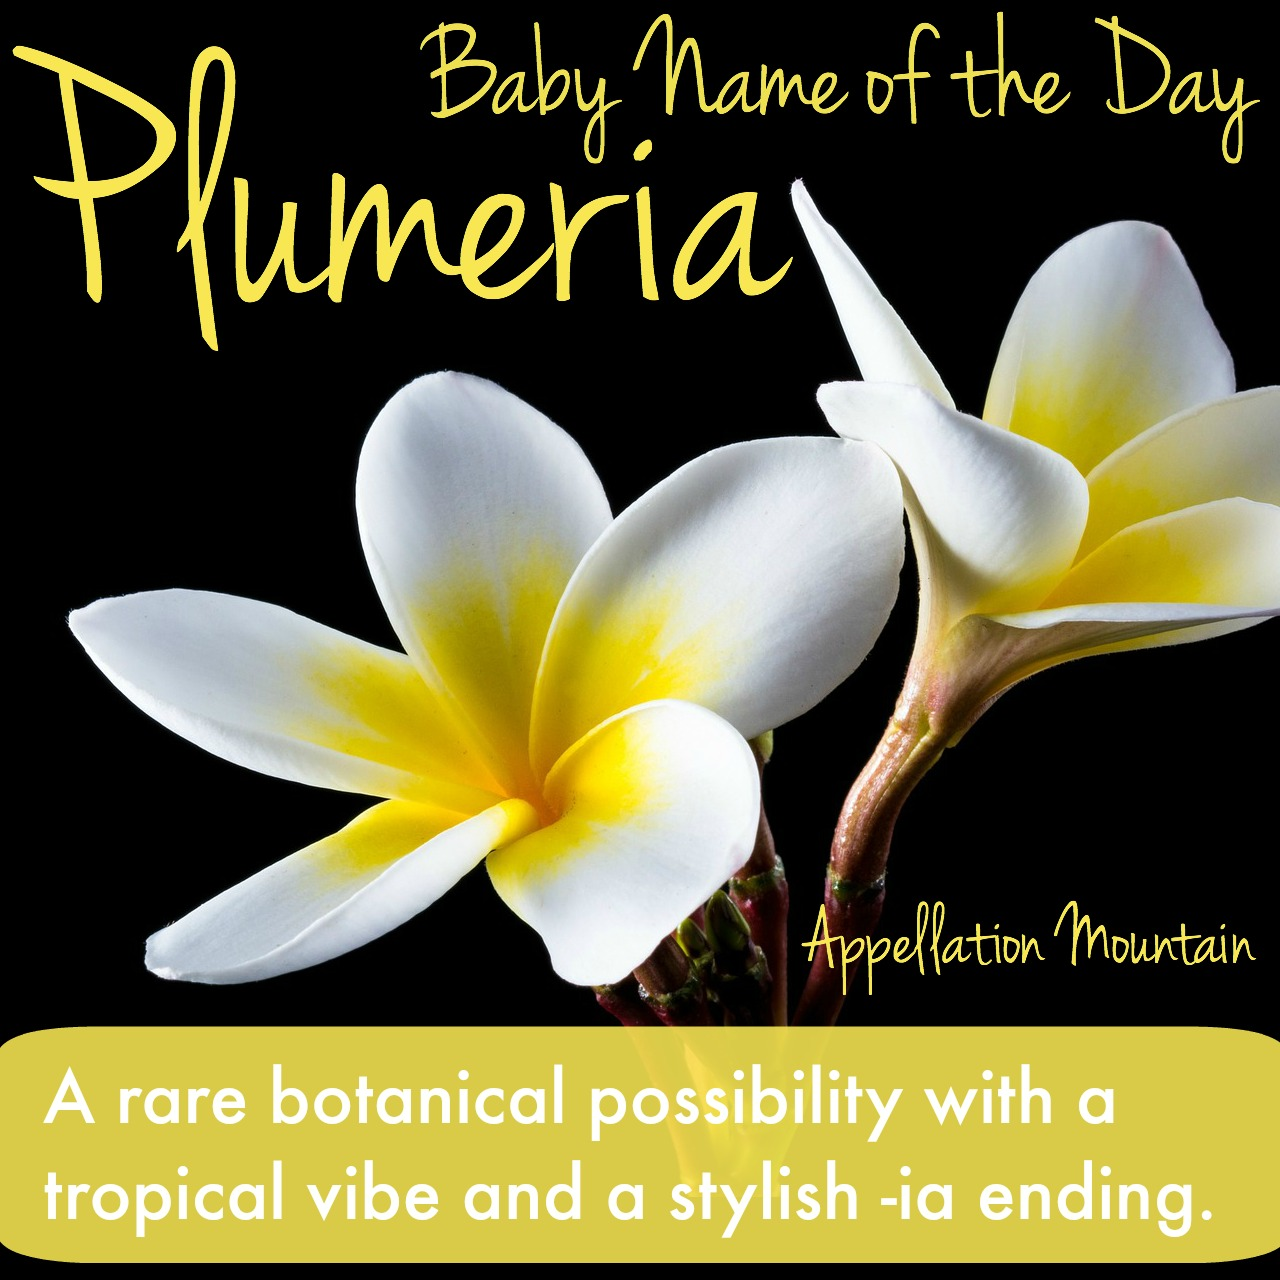 plumeria baby name of the day  appellation mountain, Natural flower